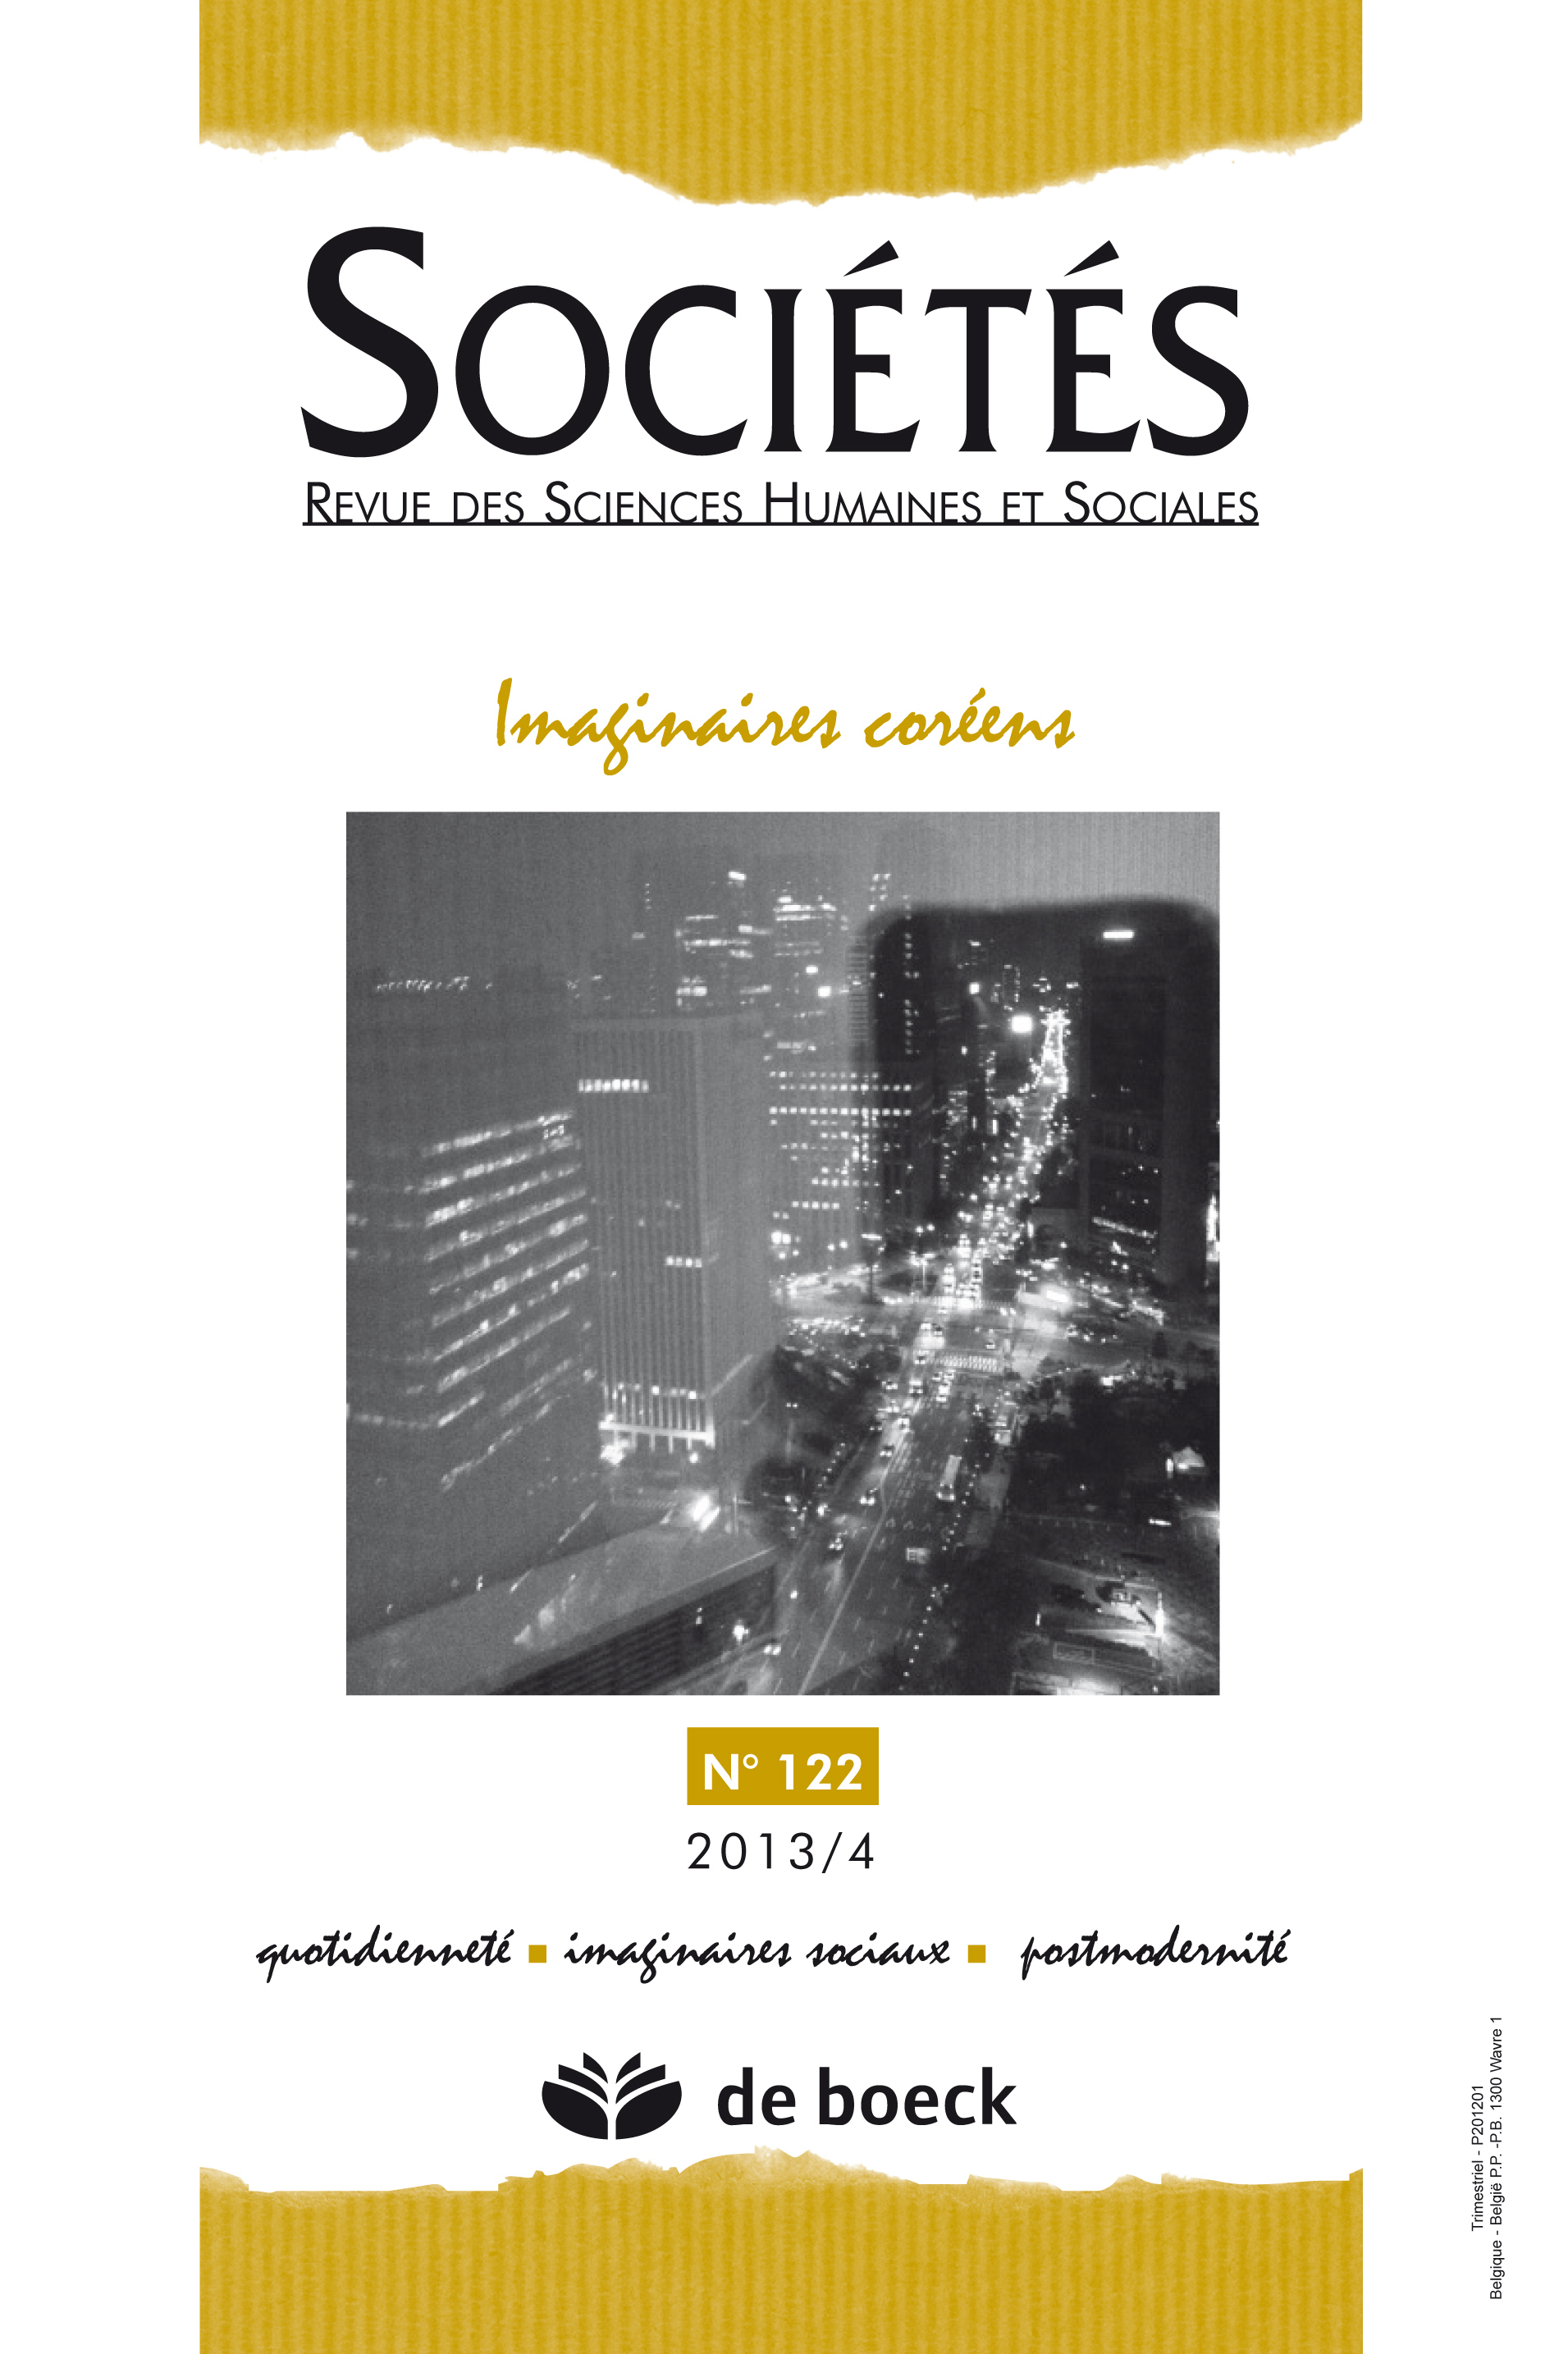 SOCIETES 2013/4 N.122 IMAGINAIRES COREENS